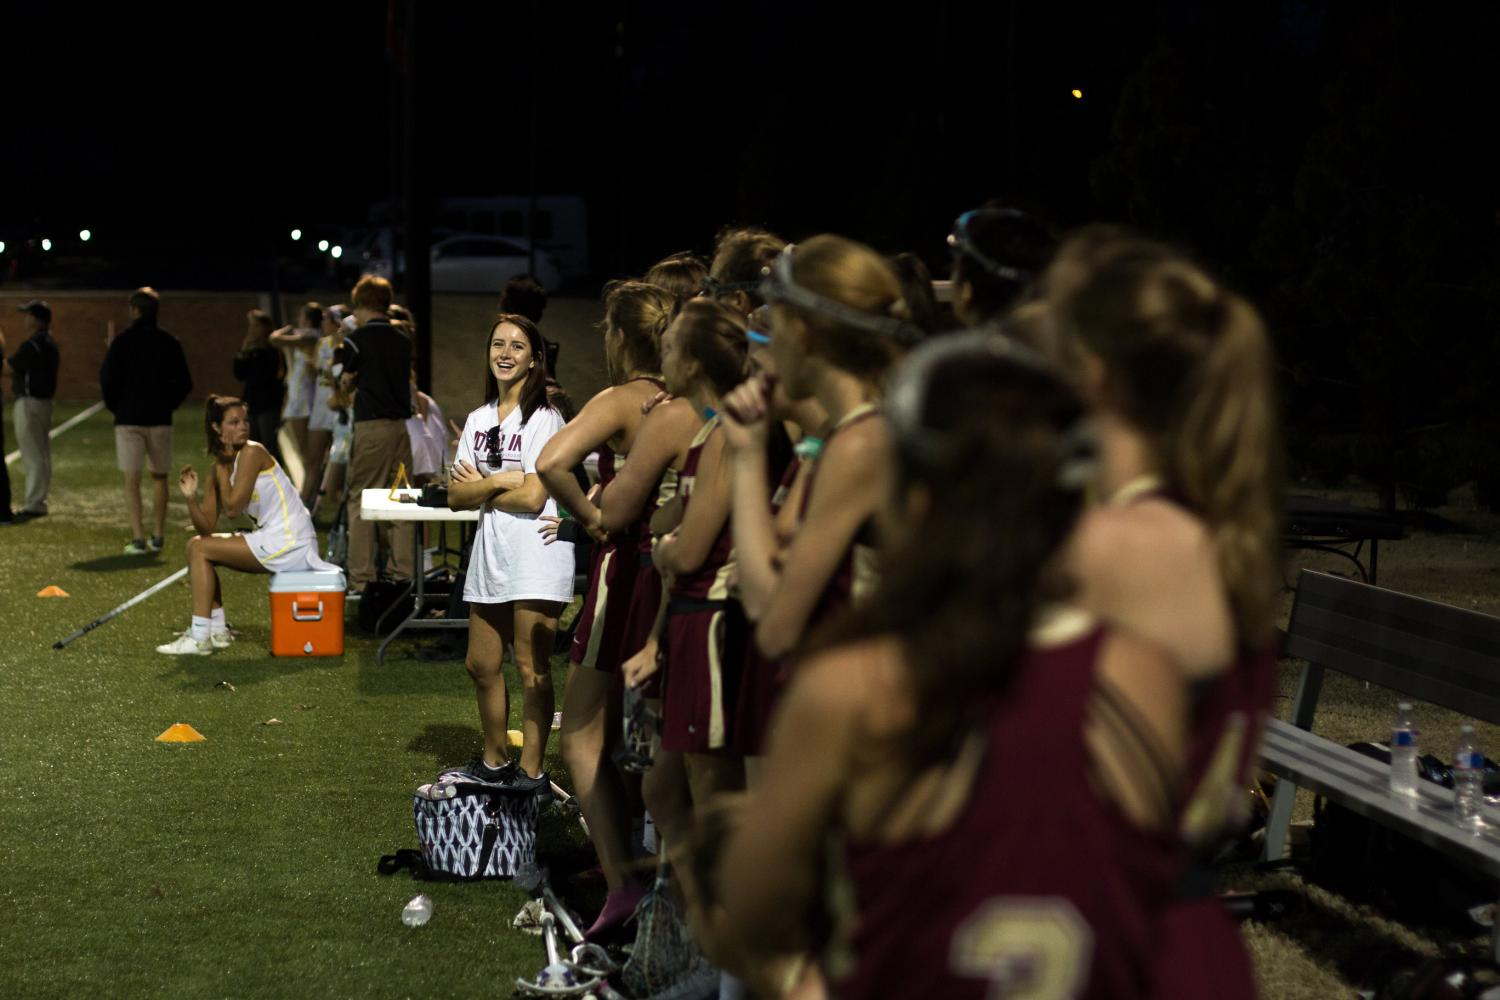 Junior Emily Grace Rodgers looks down the girls lacrosse team line during the game against Hutchison. Rodgers was unable to play lacrosse this season after receiving a concussion over a year ago.